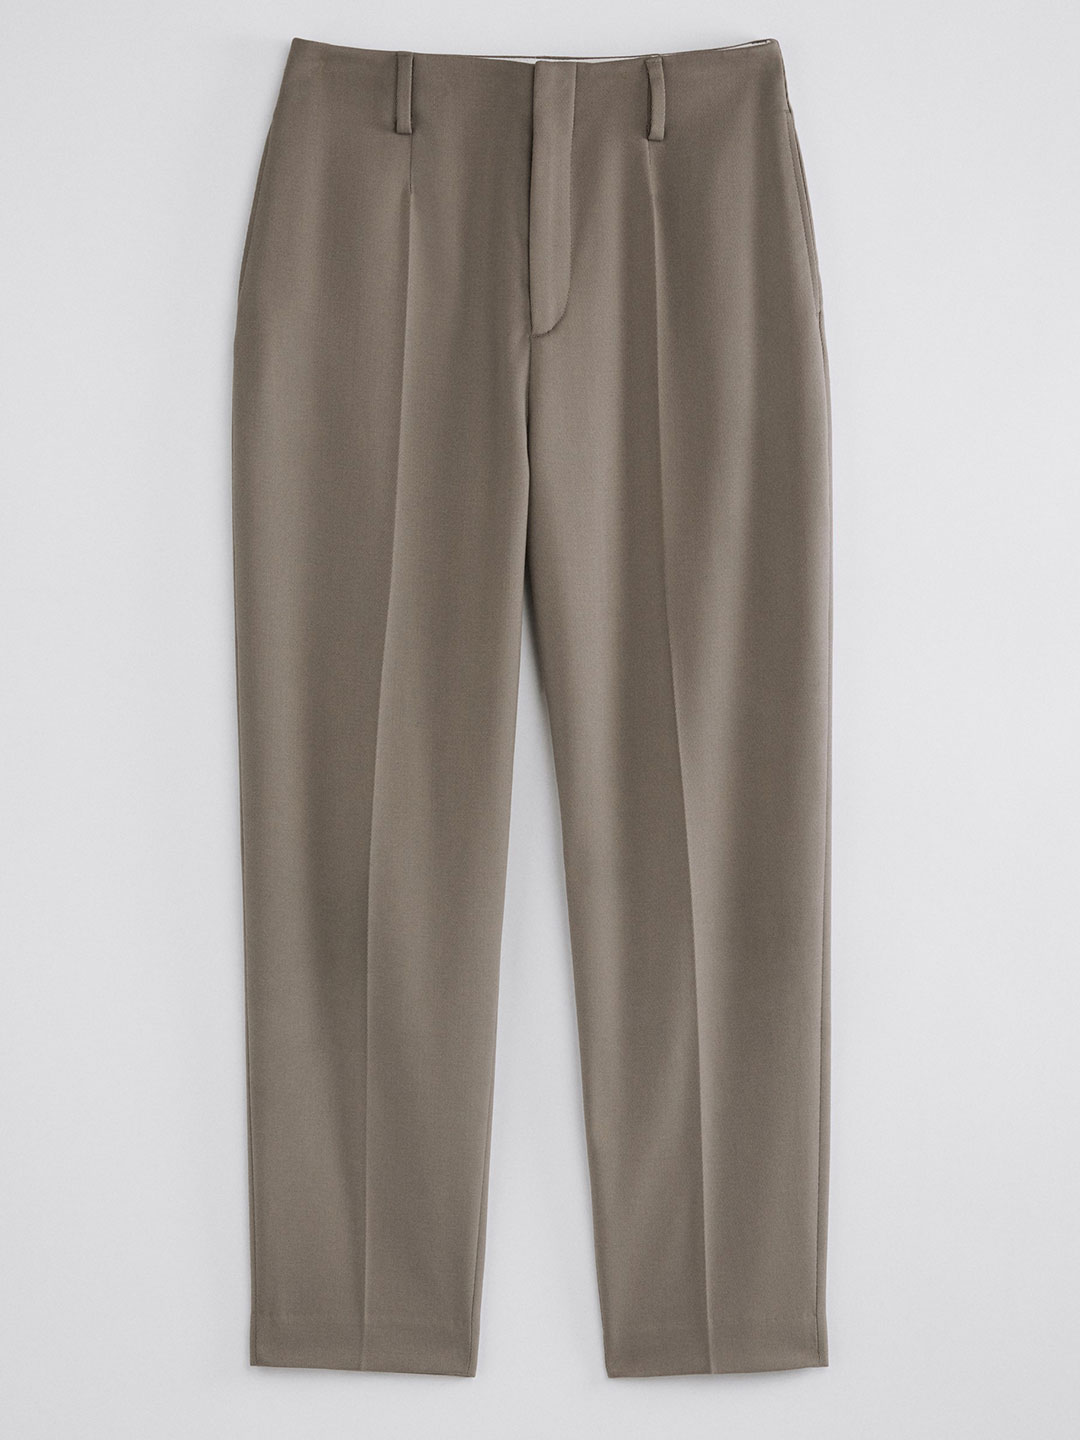 A0958-Karlie-Trouser-Filippa-K-Grey-Taupe-Front-Flat-Lay